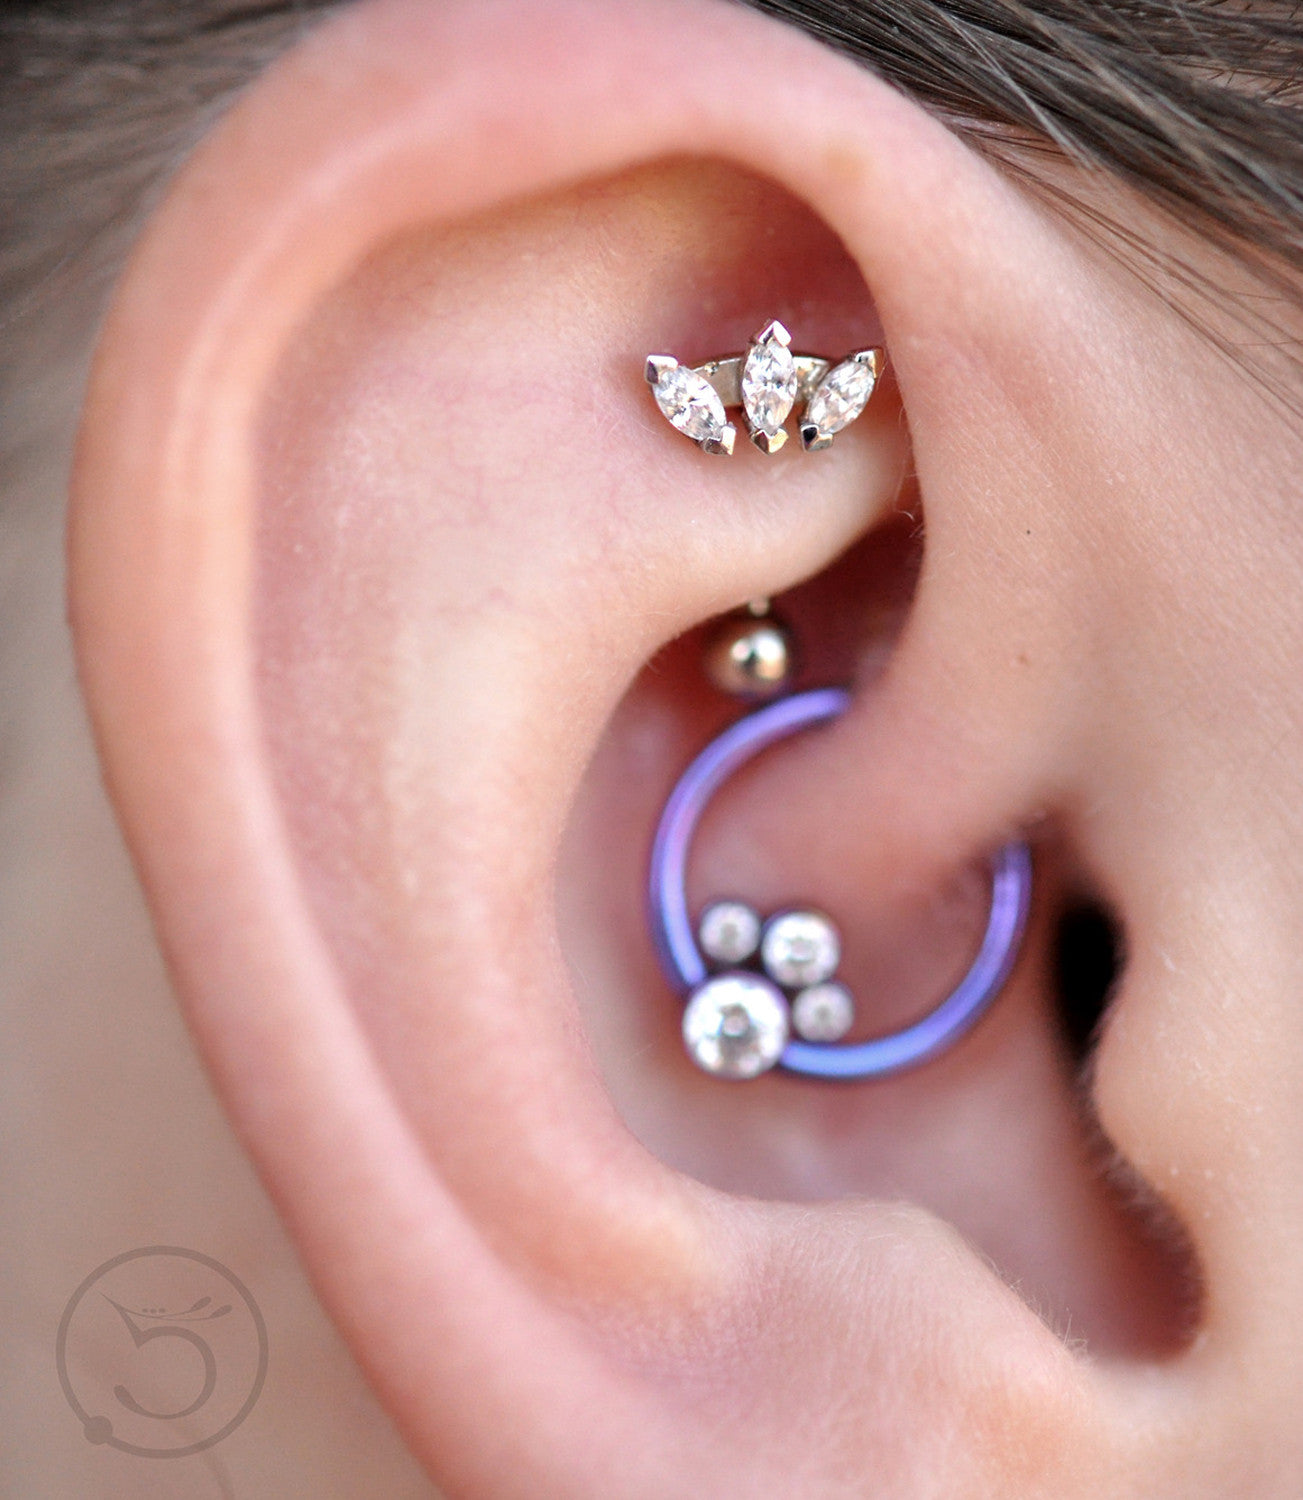 Cute Ear Piercing Ideas at MyBodiArt.com - Crystal Rook Barbell & Purple Hoop Daith Ring